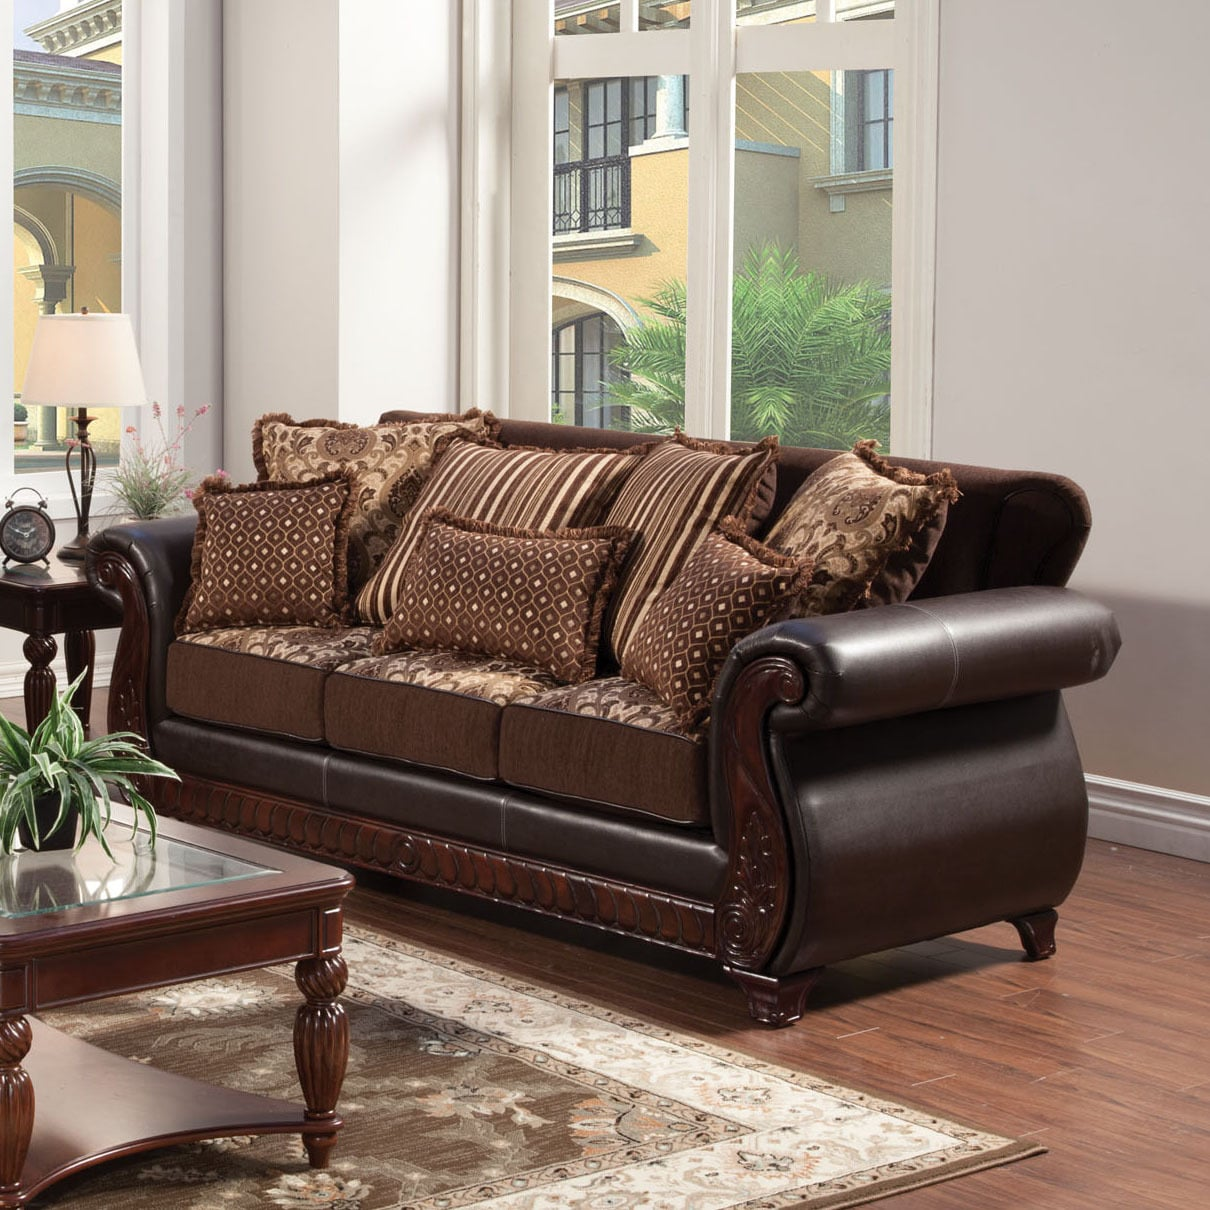 Furniture Of America Mallory Formal Cherry Red: Sofa Traditional Style Signature Traditional Style Sofa